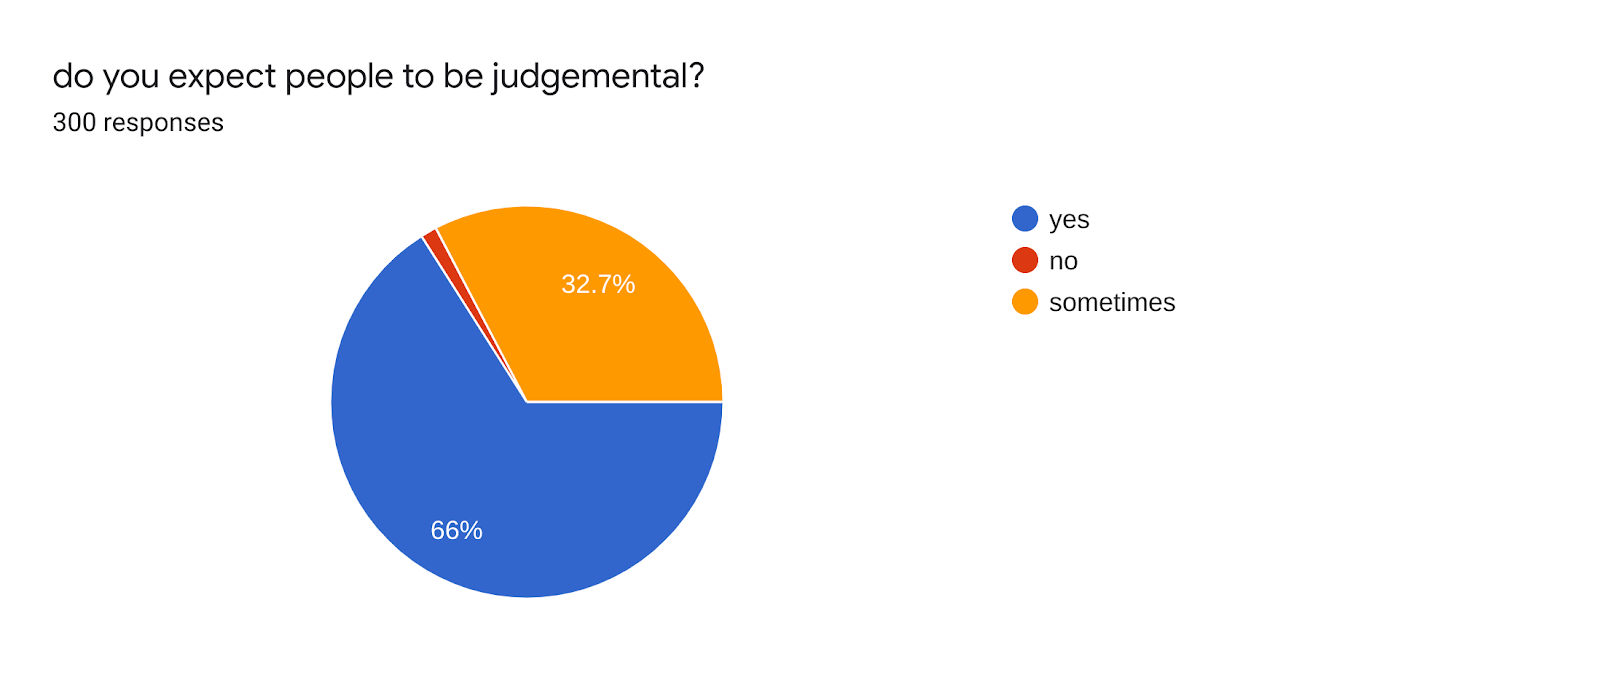 Forms response chart. Question title: do you expect people to be judgemental?. Number of responses: 300 responses.